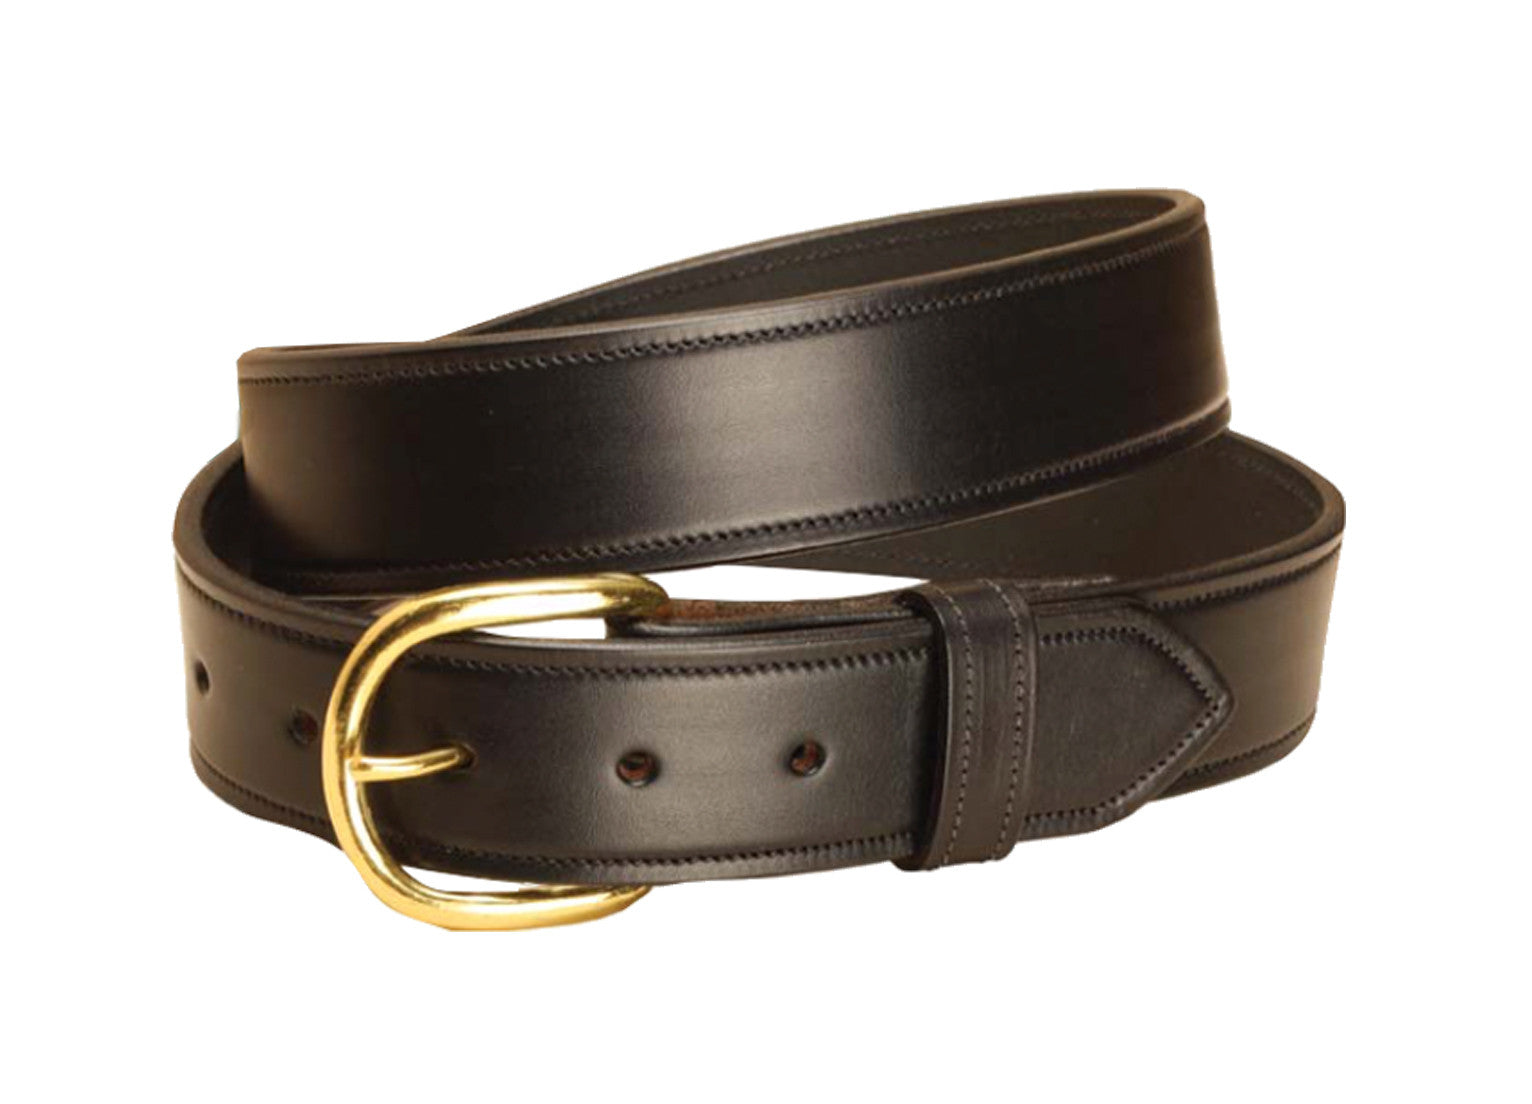 "Tory Leather 1 1/2"" Leather Belt"